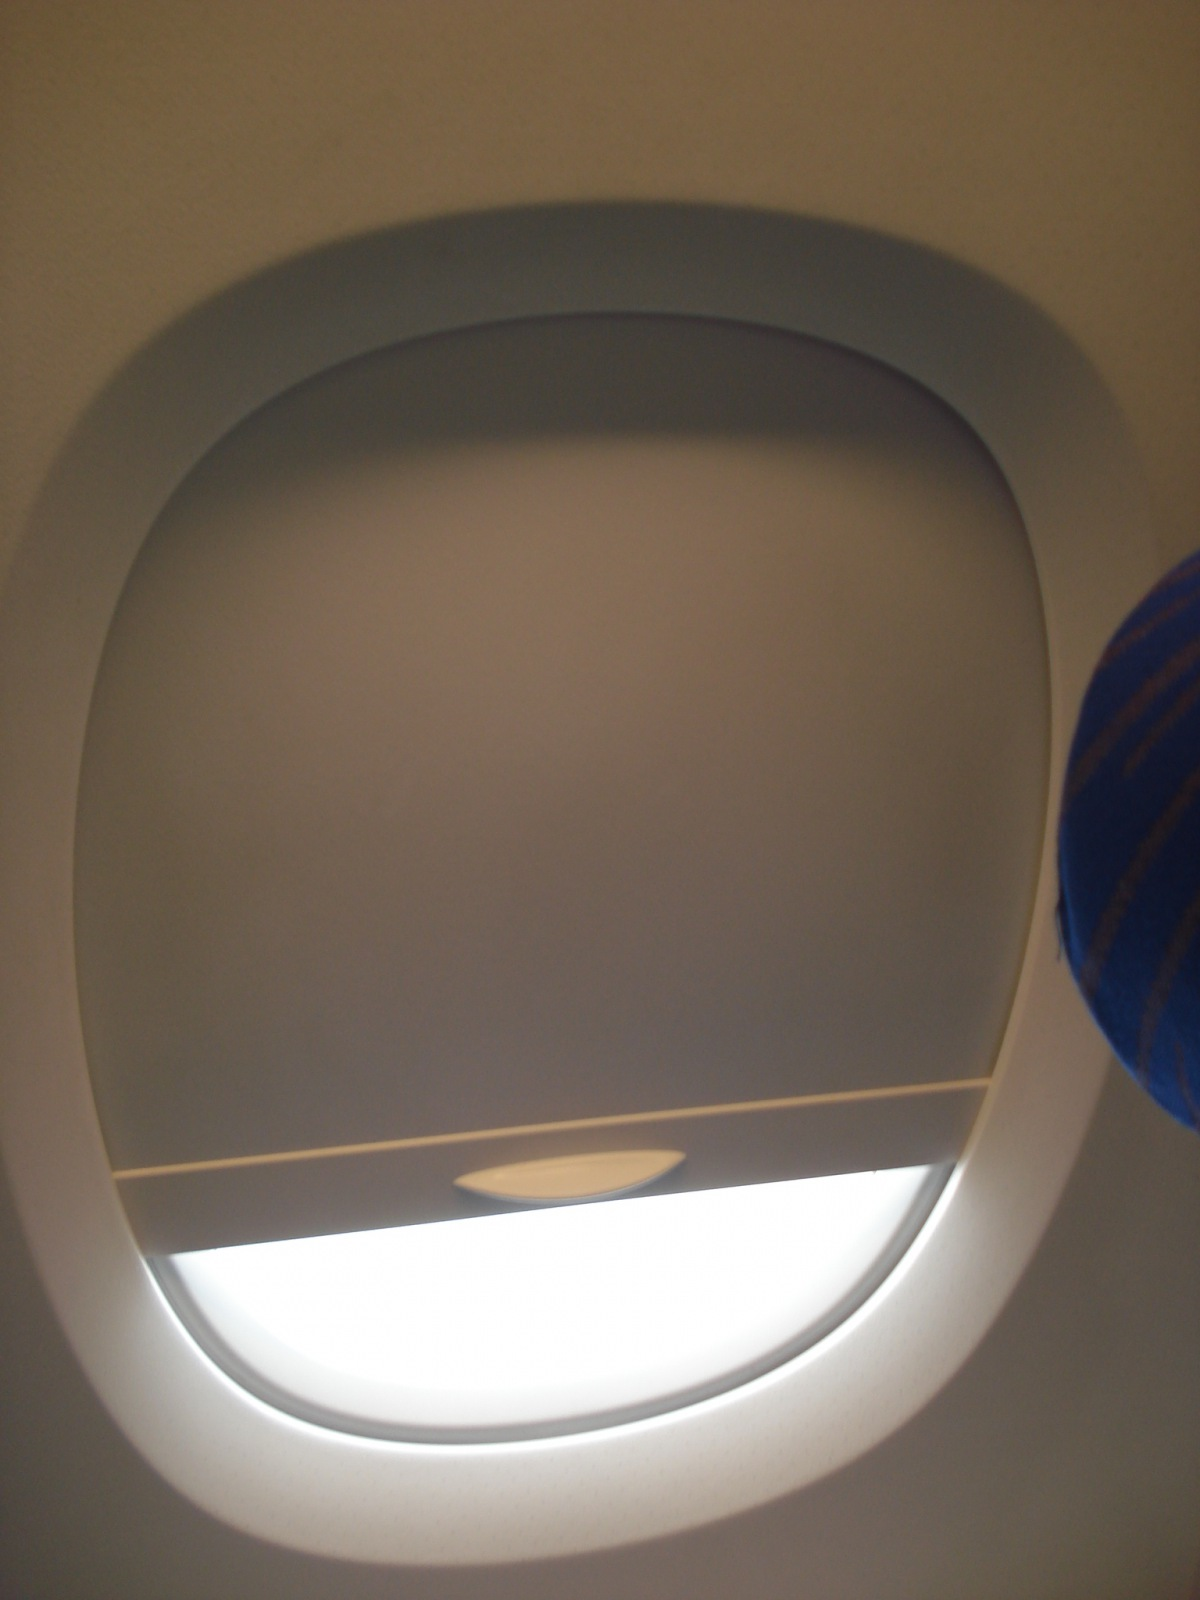 Window of Airbus A380 China Southern Airlines